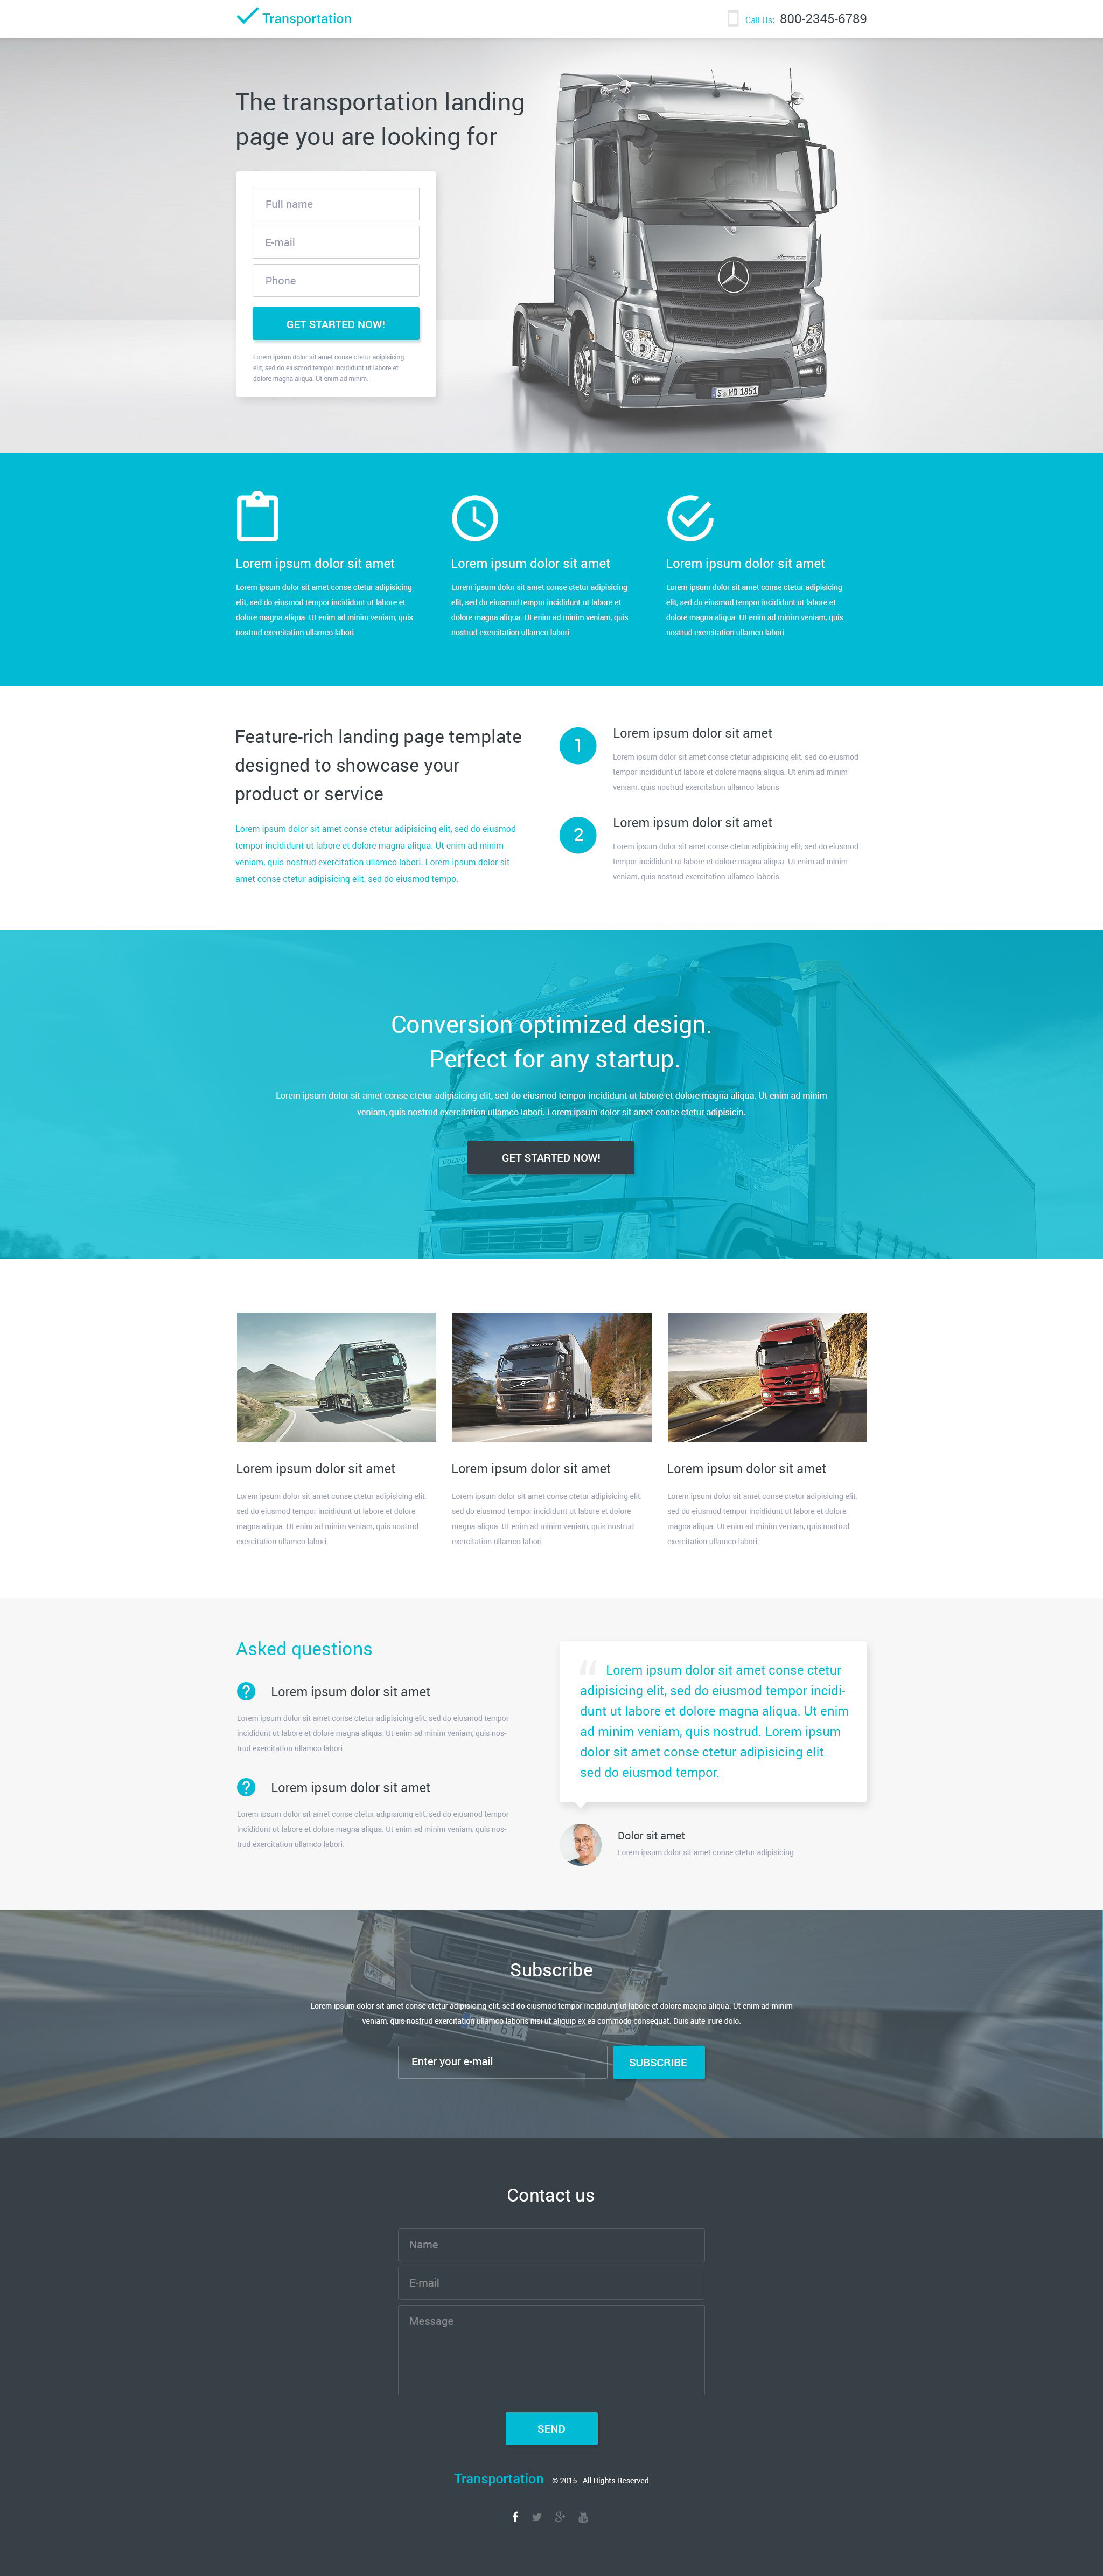 The Transportation Transport Landing Page Template Design 53561, one of the best Landing Page templates of its kind (transportation, most popular), also known as transportation transport Landing Page template, fast Landing Page template, reliability Landing Page template, safety Landing Page template, express Landing Page template, exportation Landing Page template, trucking Landing Page template, delivery Landing Page template, work Landing Page template, team Landing Page template, profile Landing Page template, support Landing Page template, customer Landing Page template, clients solutions Landing Page template, cars Landing Page template, cargo Landing Page template, services Landing Page template, shipment Landing Page template, rates Landing Page template, prices Landing Page template, offer Landing Page template, standards Landing Page template, vehicle Landing Page template, destination Landing Page template, trucking Landing Page template, sea Landing Page template, air and related with transportation transport, fast, reliability, safety, express, exportation, trucking, delivery, work, team, profile, support, customer, clients solutions, cars, cargo, services, shipment, rates, prices, offer, standards, vehicle, destination, trucking, sea, air, etc.